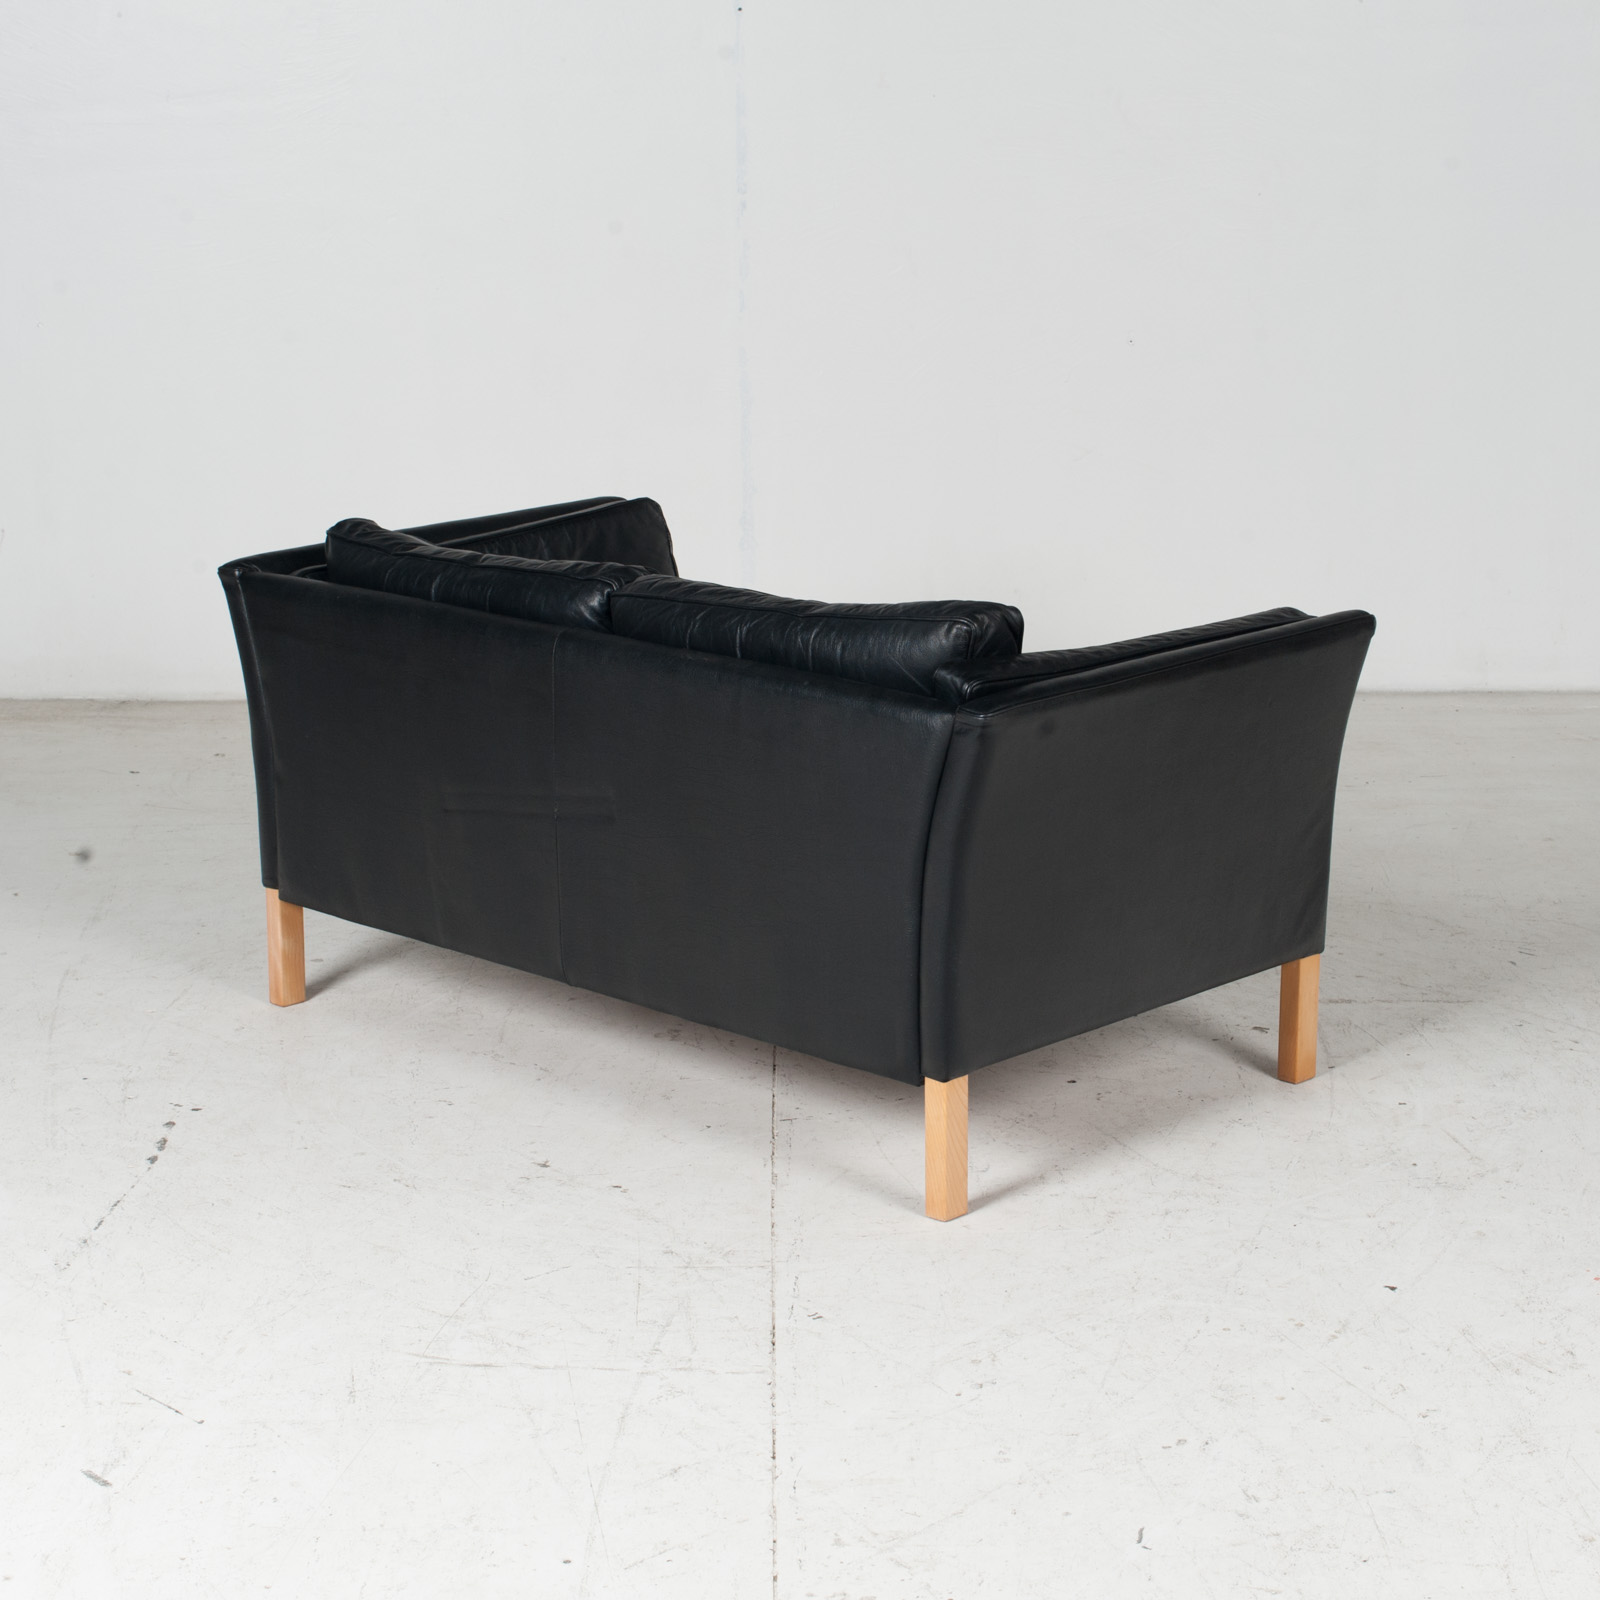 2 Seat Sofa By Stouby In Black Leather With Beech Legs, 1960s, Denmark 7